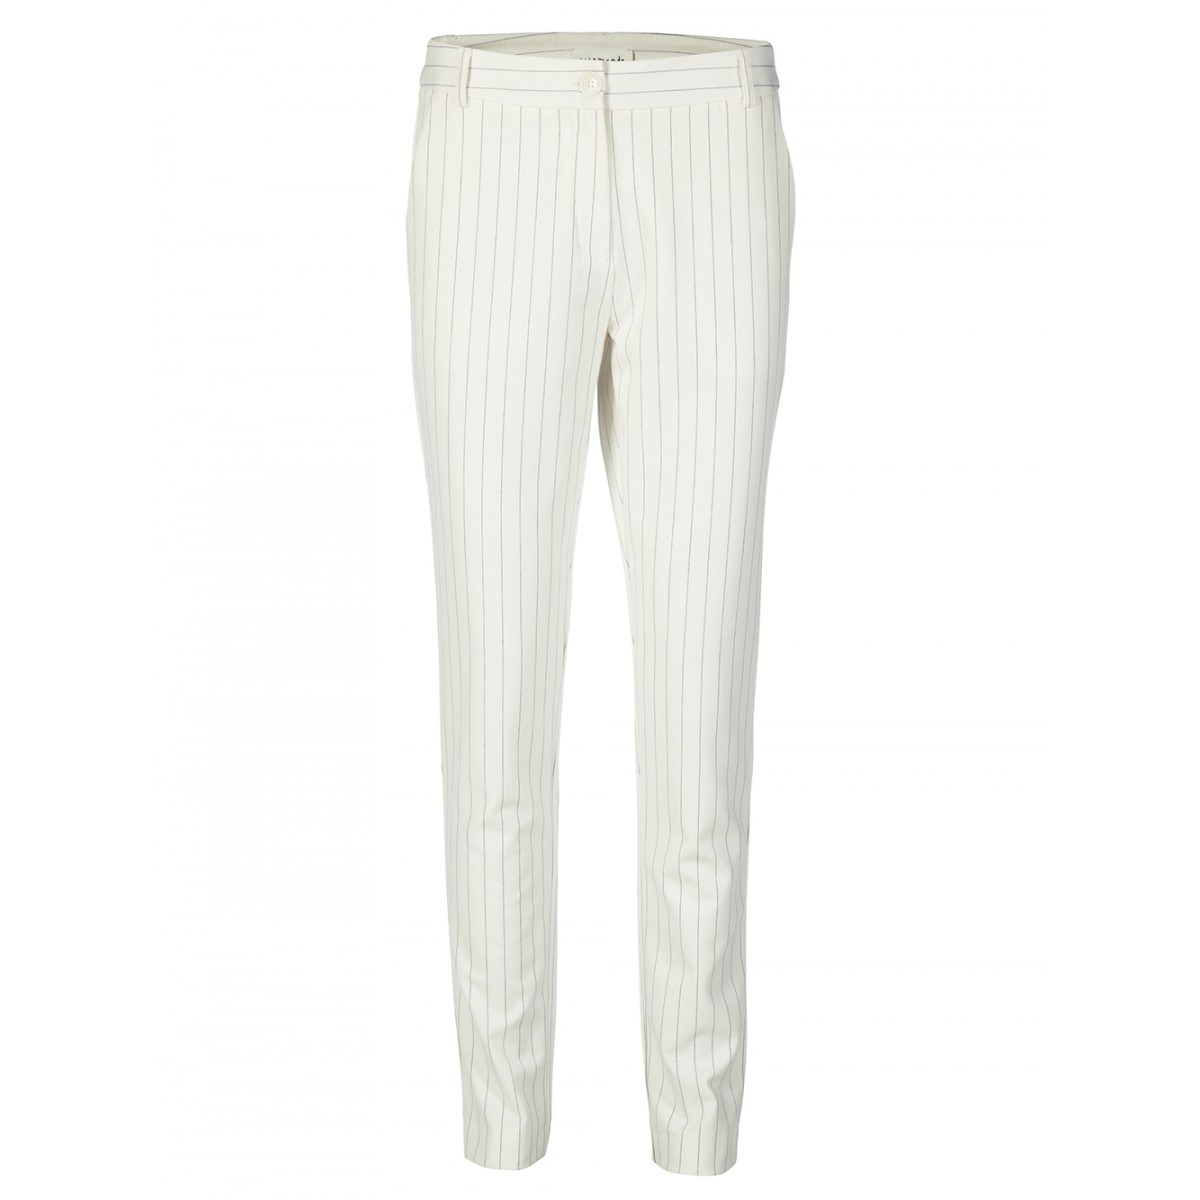 Rosemunde 4404-5094 Trousers White/Navy Stripe-33